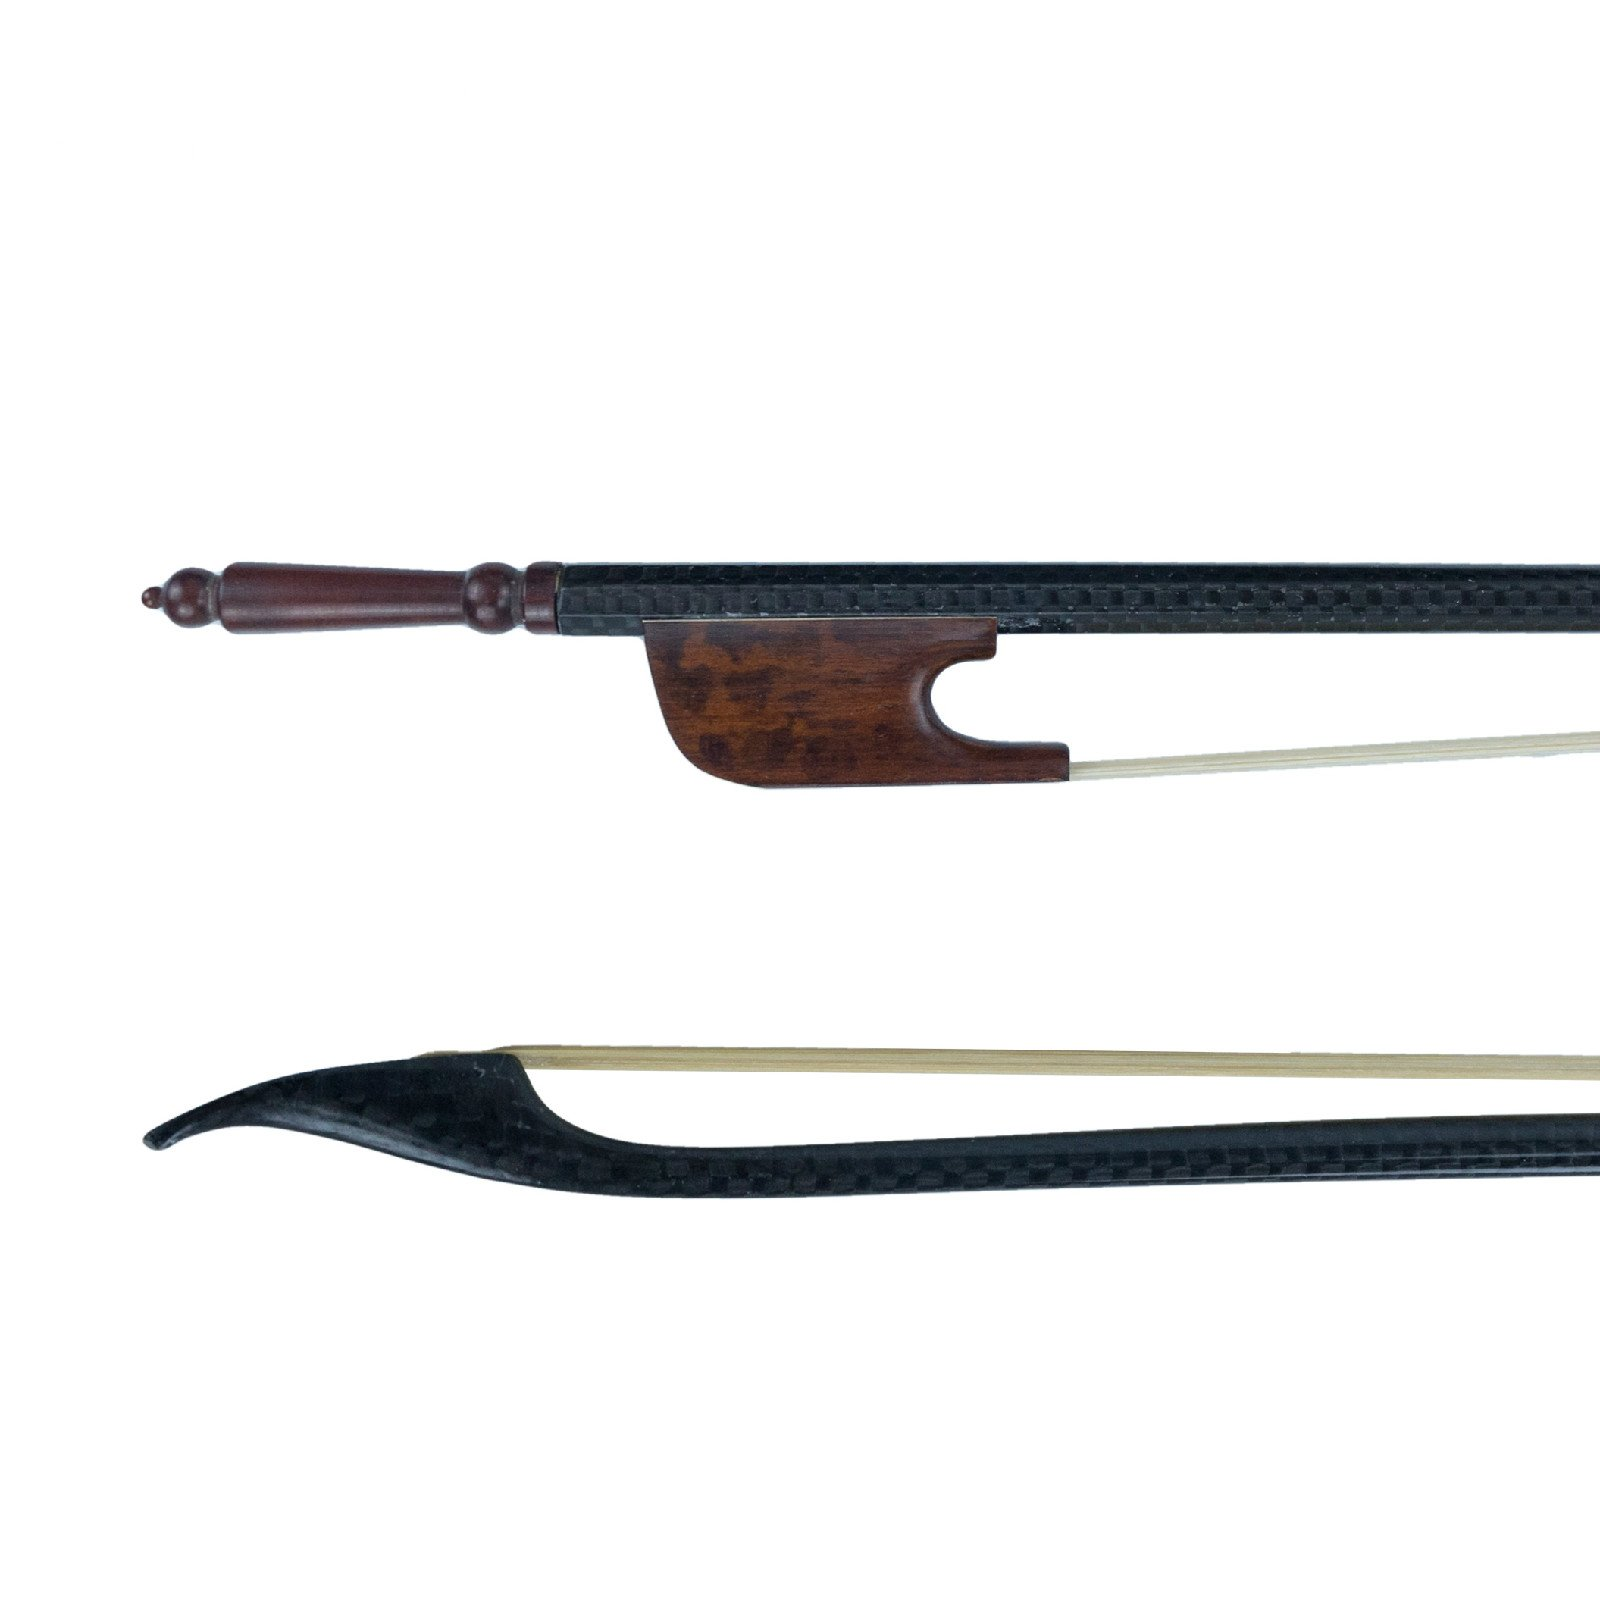 NAOMI 4/4 Carbon Fiber Double Bass Bow Baroque Bow Real Mongolia Horse Hair Snake Wood Frog Violin Accessories